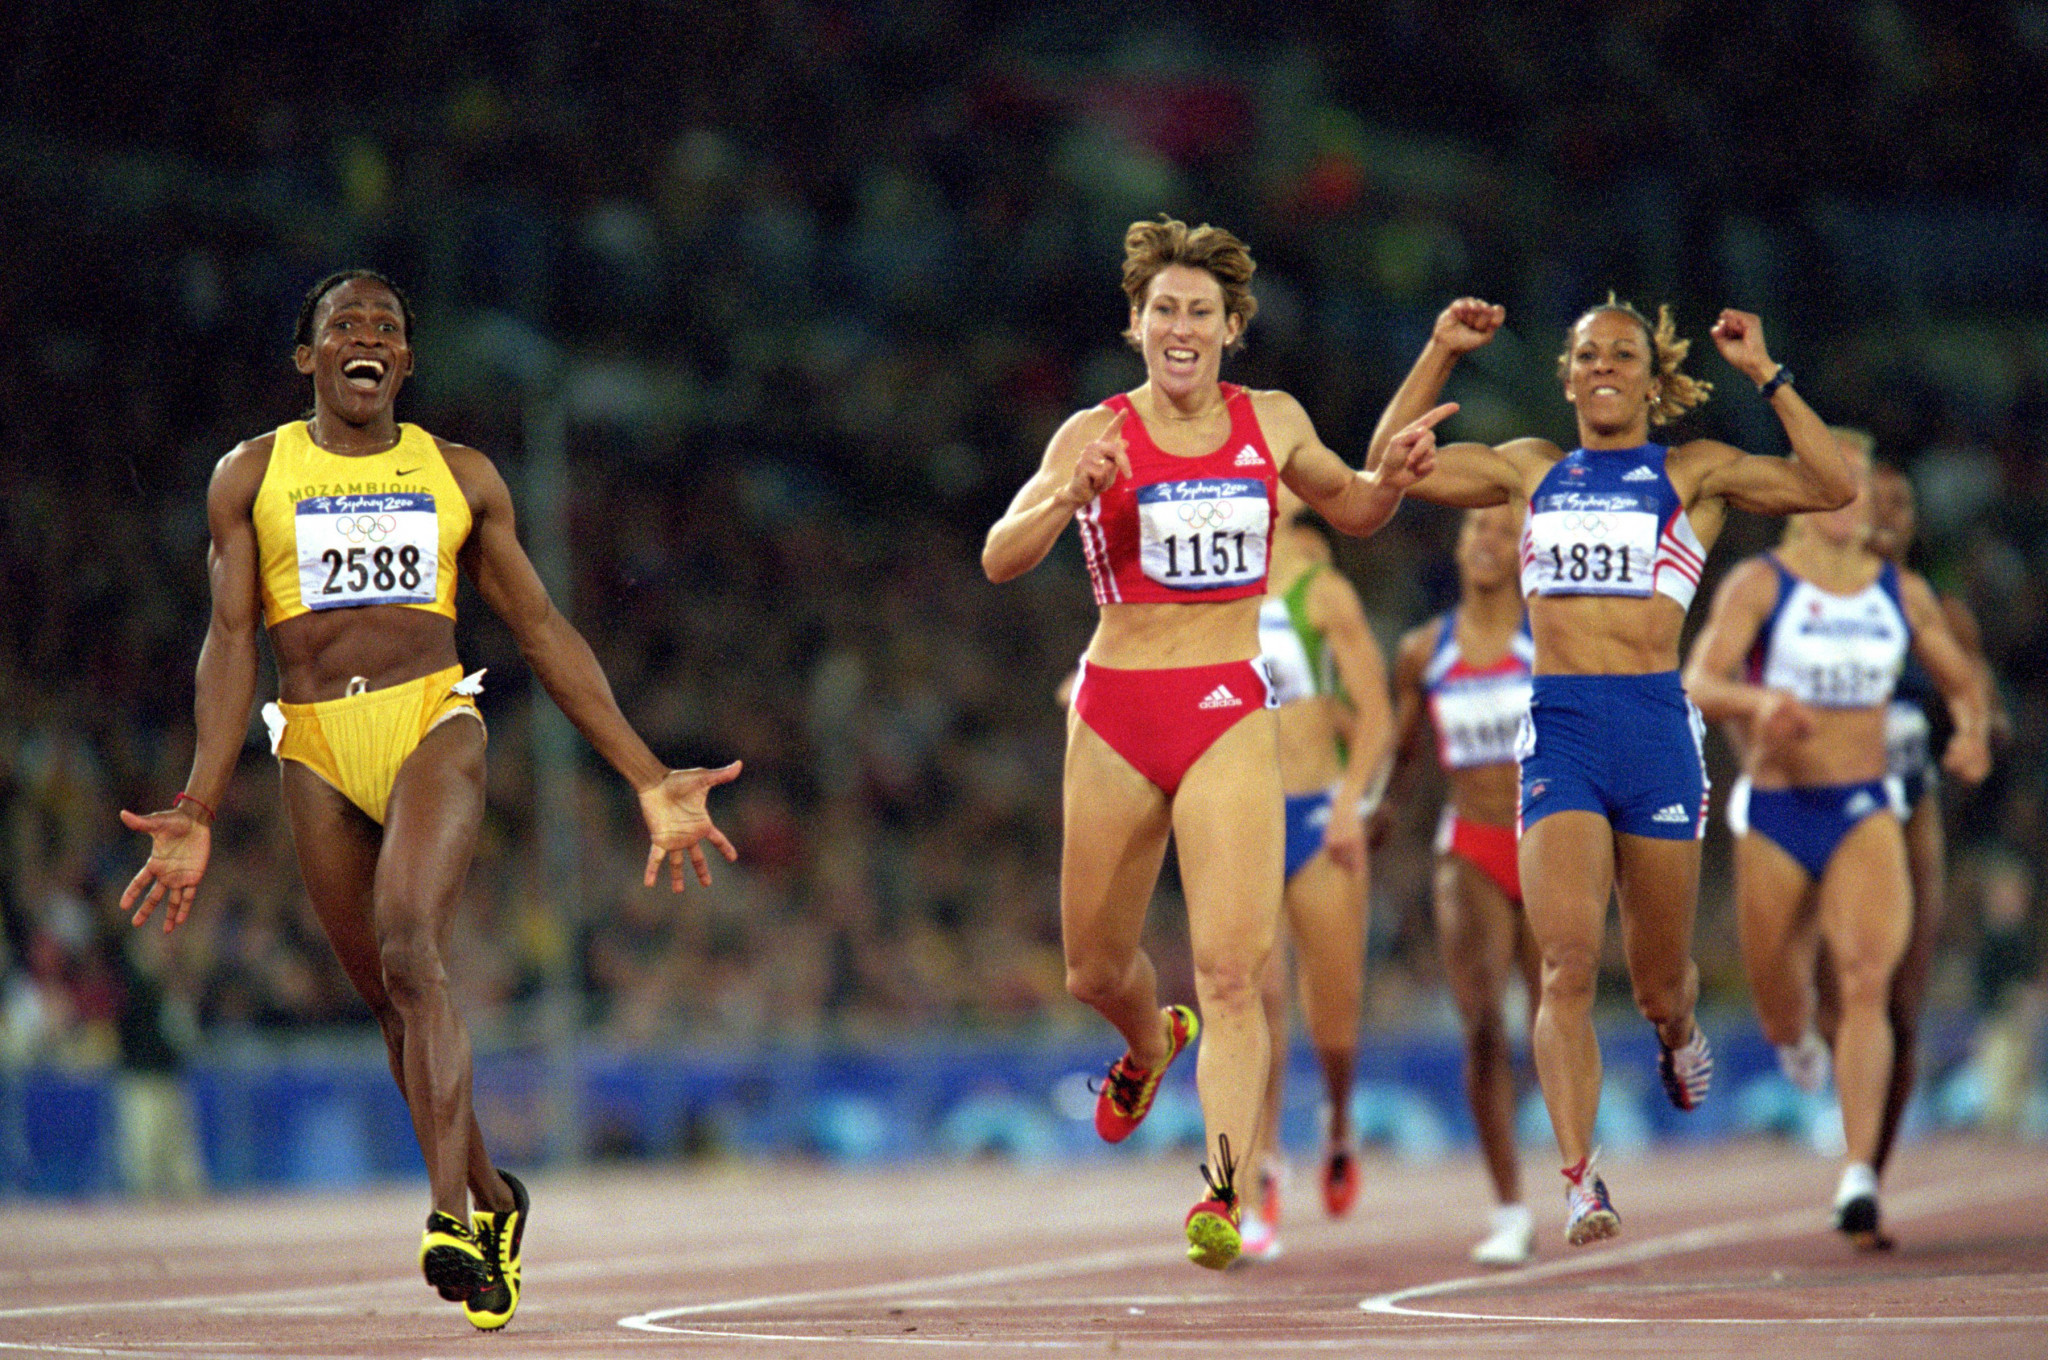 Mozambique's Maria Mutola shows her delight at winning the 800m at Sydney 2000 as the silver and bronze medallists, Austria's Stephanie Graf and Britain's Kelly Holmes, seem just as pleased ©Getty Images